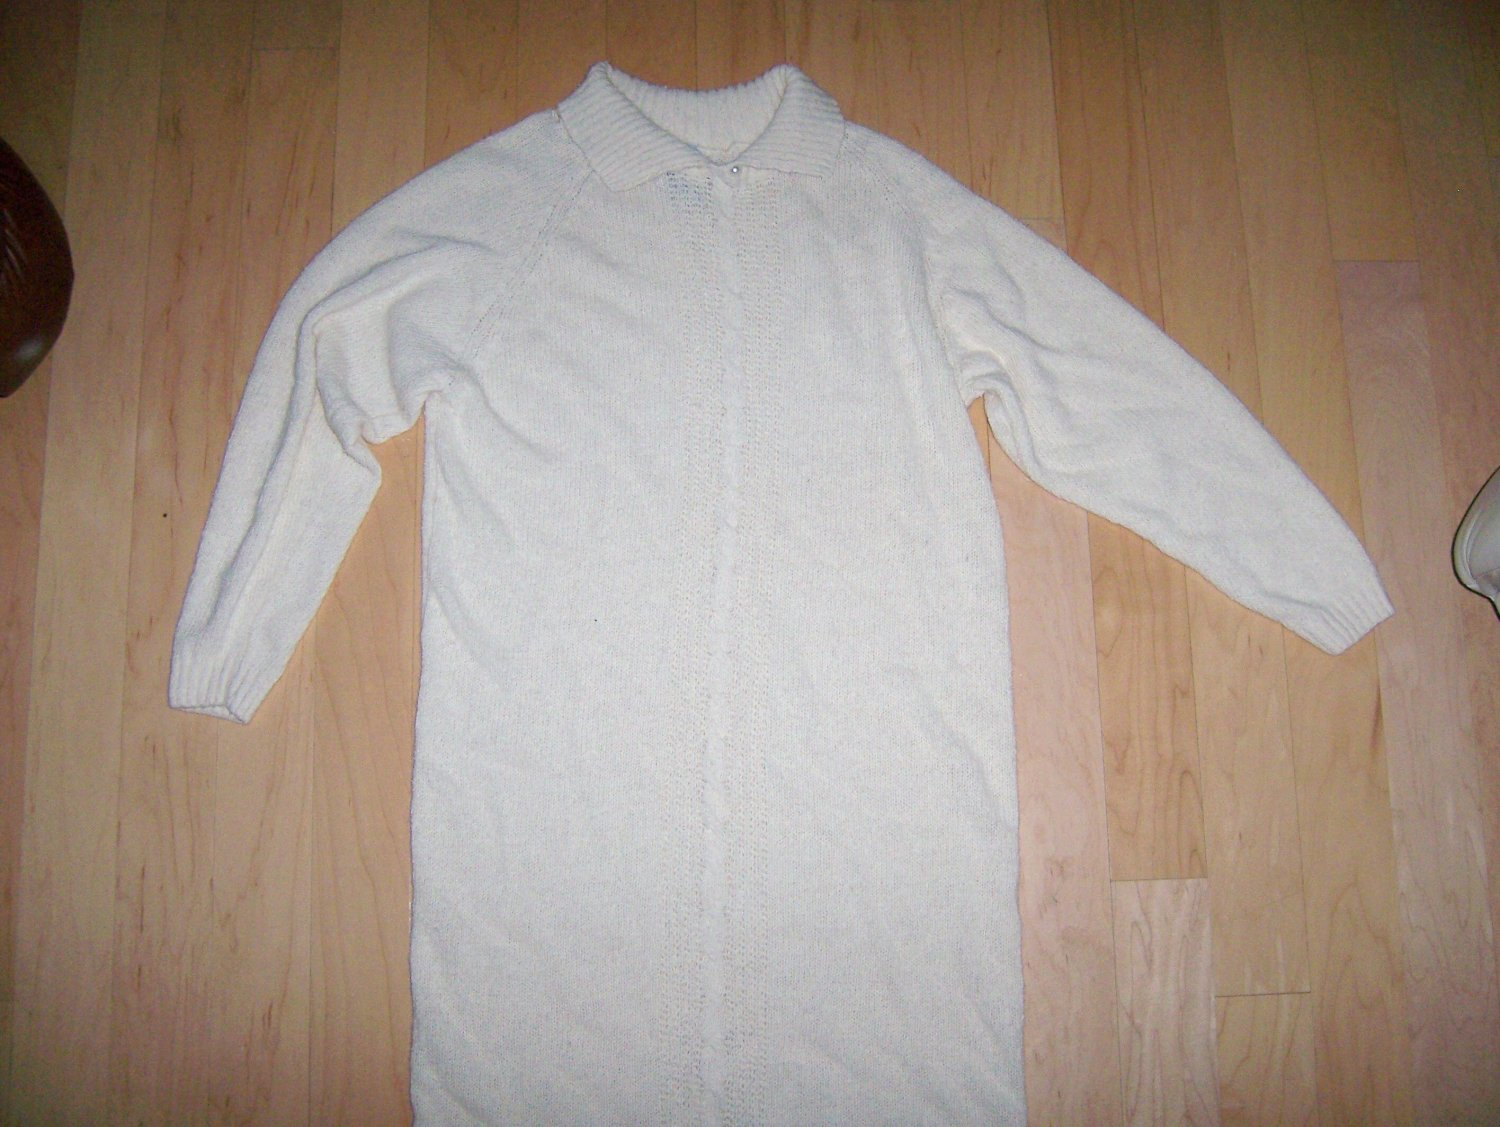 Ladies Knit Dress Size 10 Long Sleeves BNK181